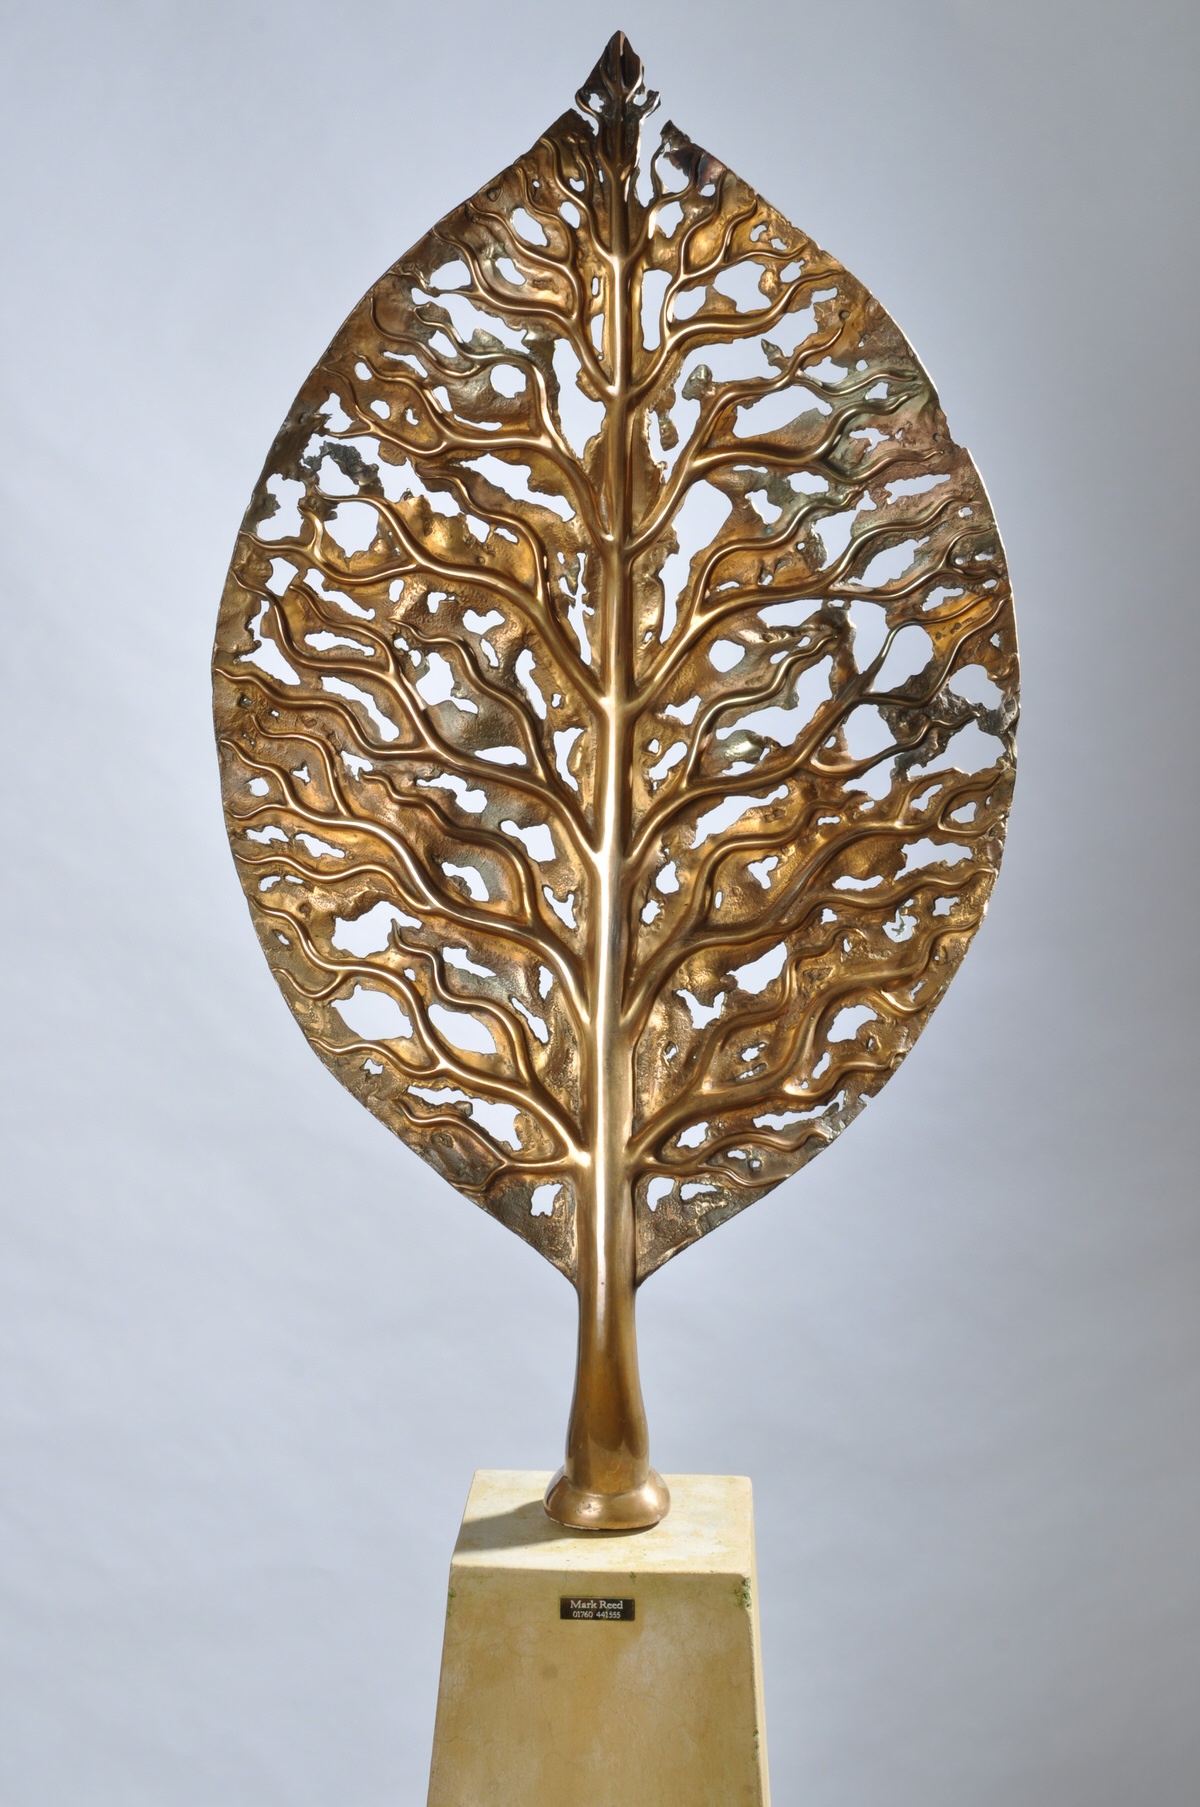 Life Leaf -bronze, Limited edition Garden Sculpture Corporate commission for PriceWaterHouseCoopers sculpture for specifiers RHS Chelsea Flower Show centrepiece for weddings by Mark Reed sculptor